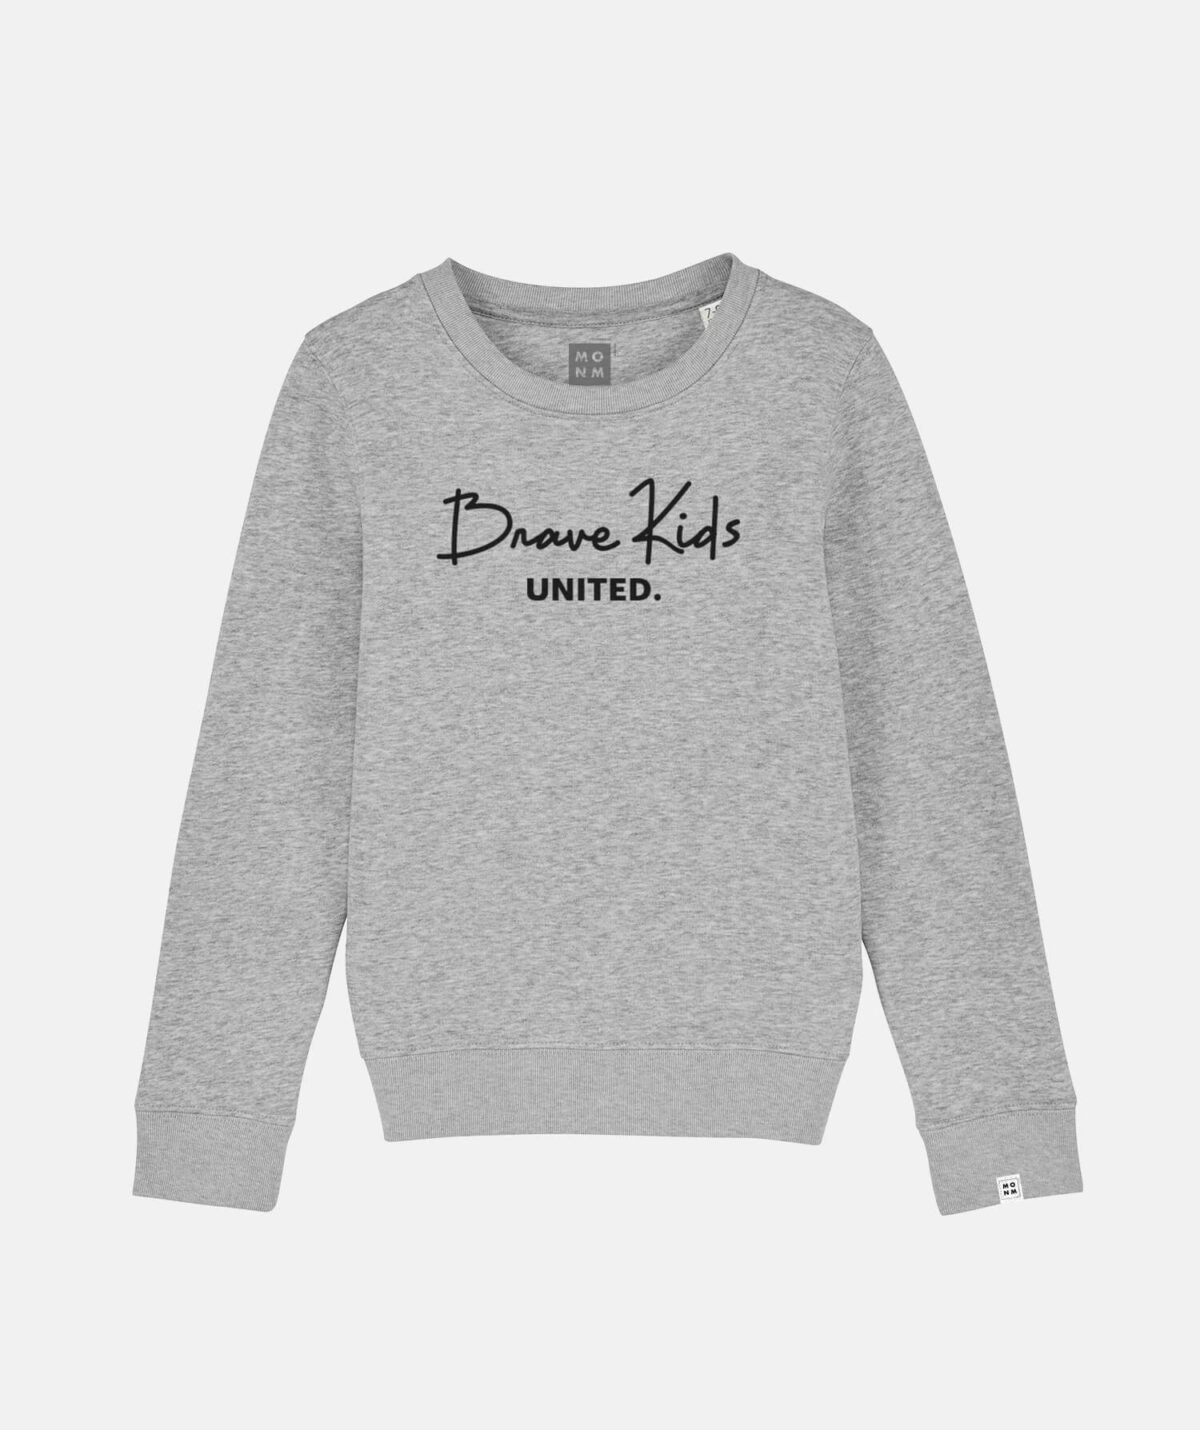 Brave Kids united sweater voor kinderen van Mangos on Monday